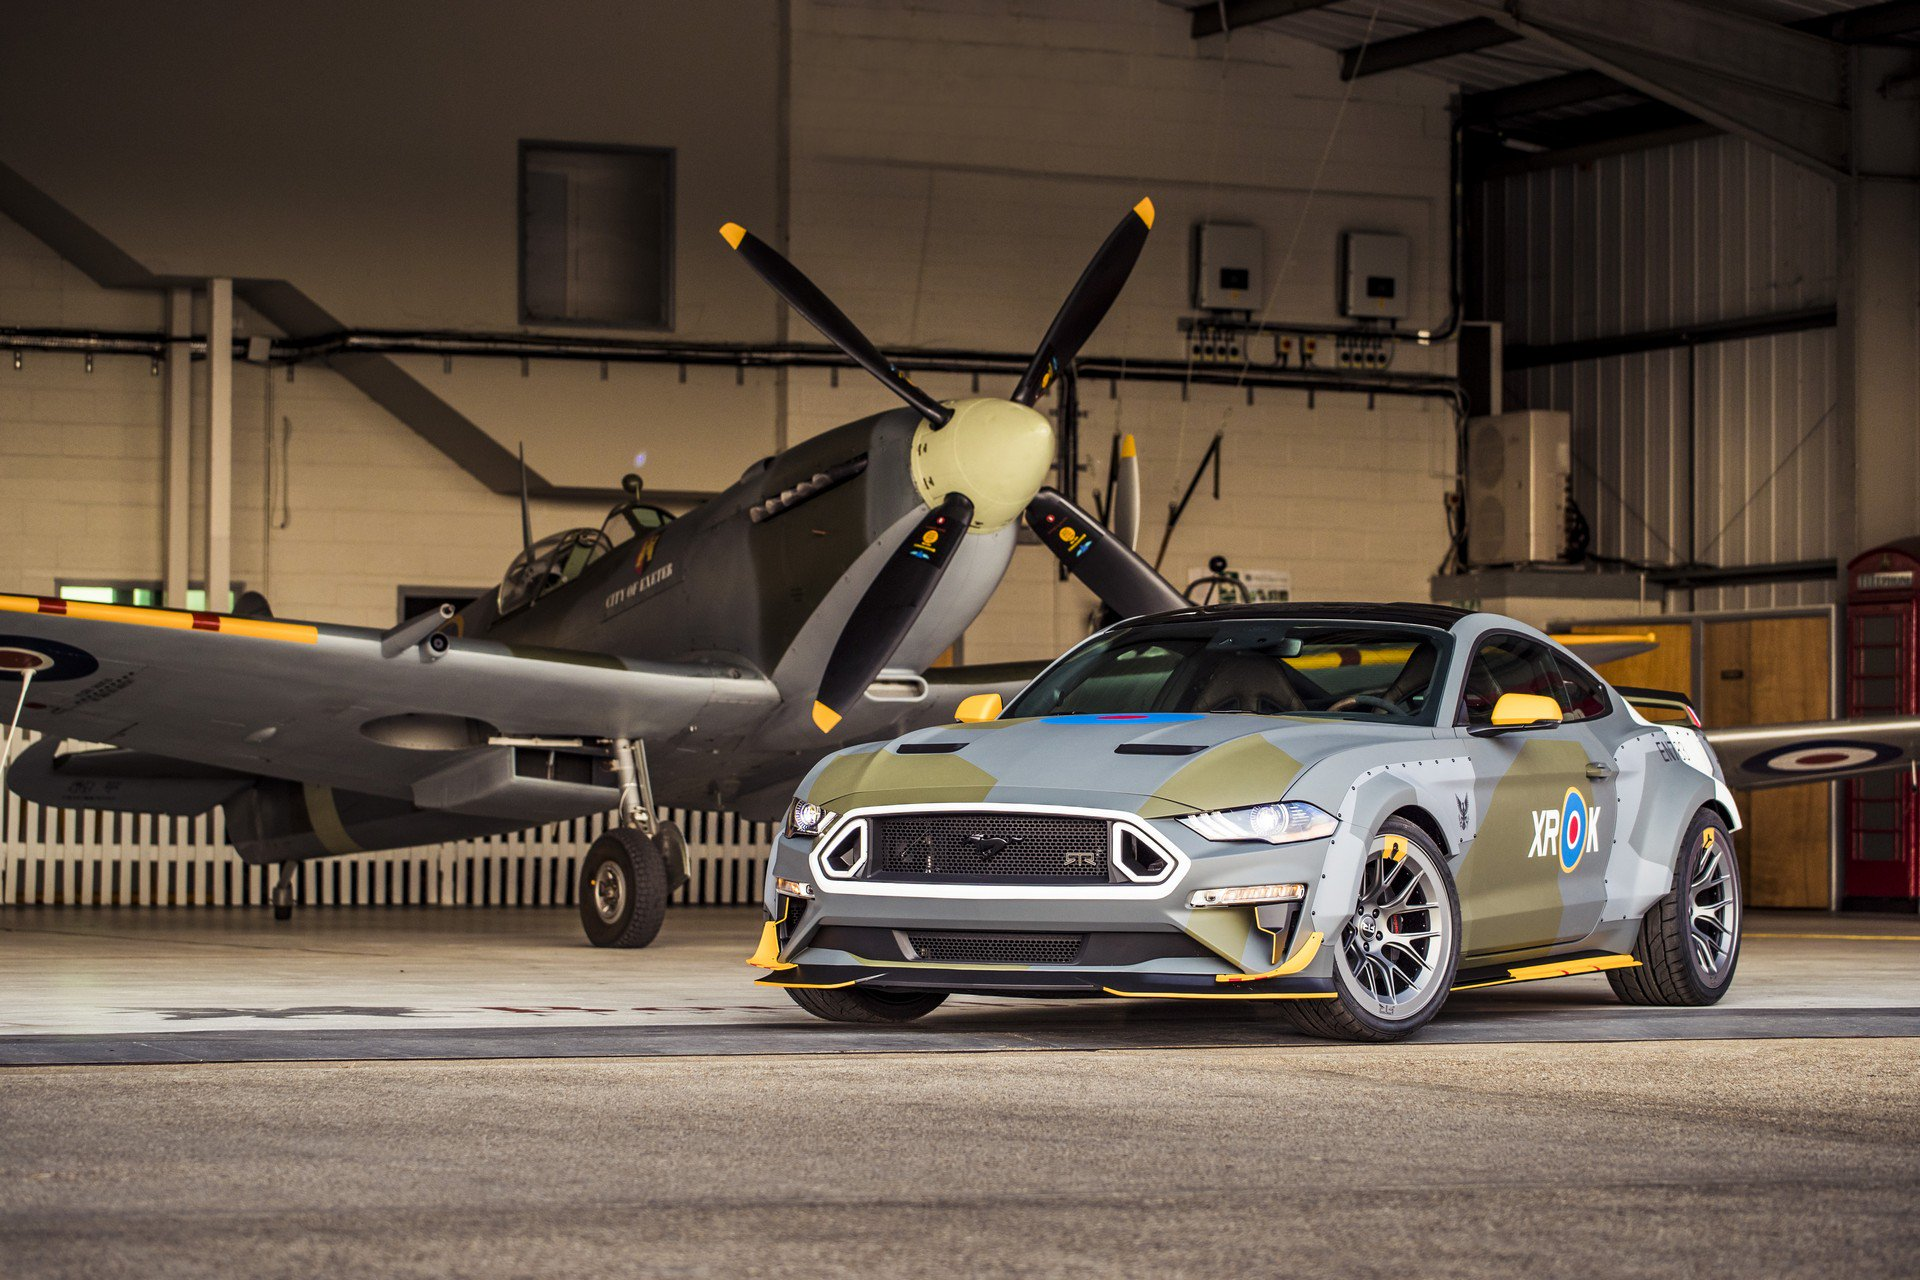 Ford Eagle Squadron Mustang GT (1)